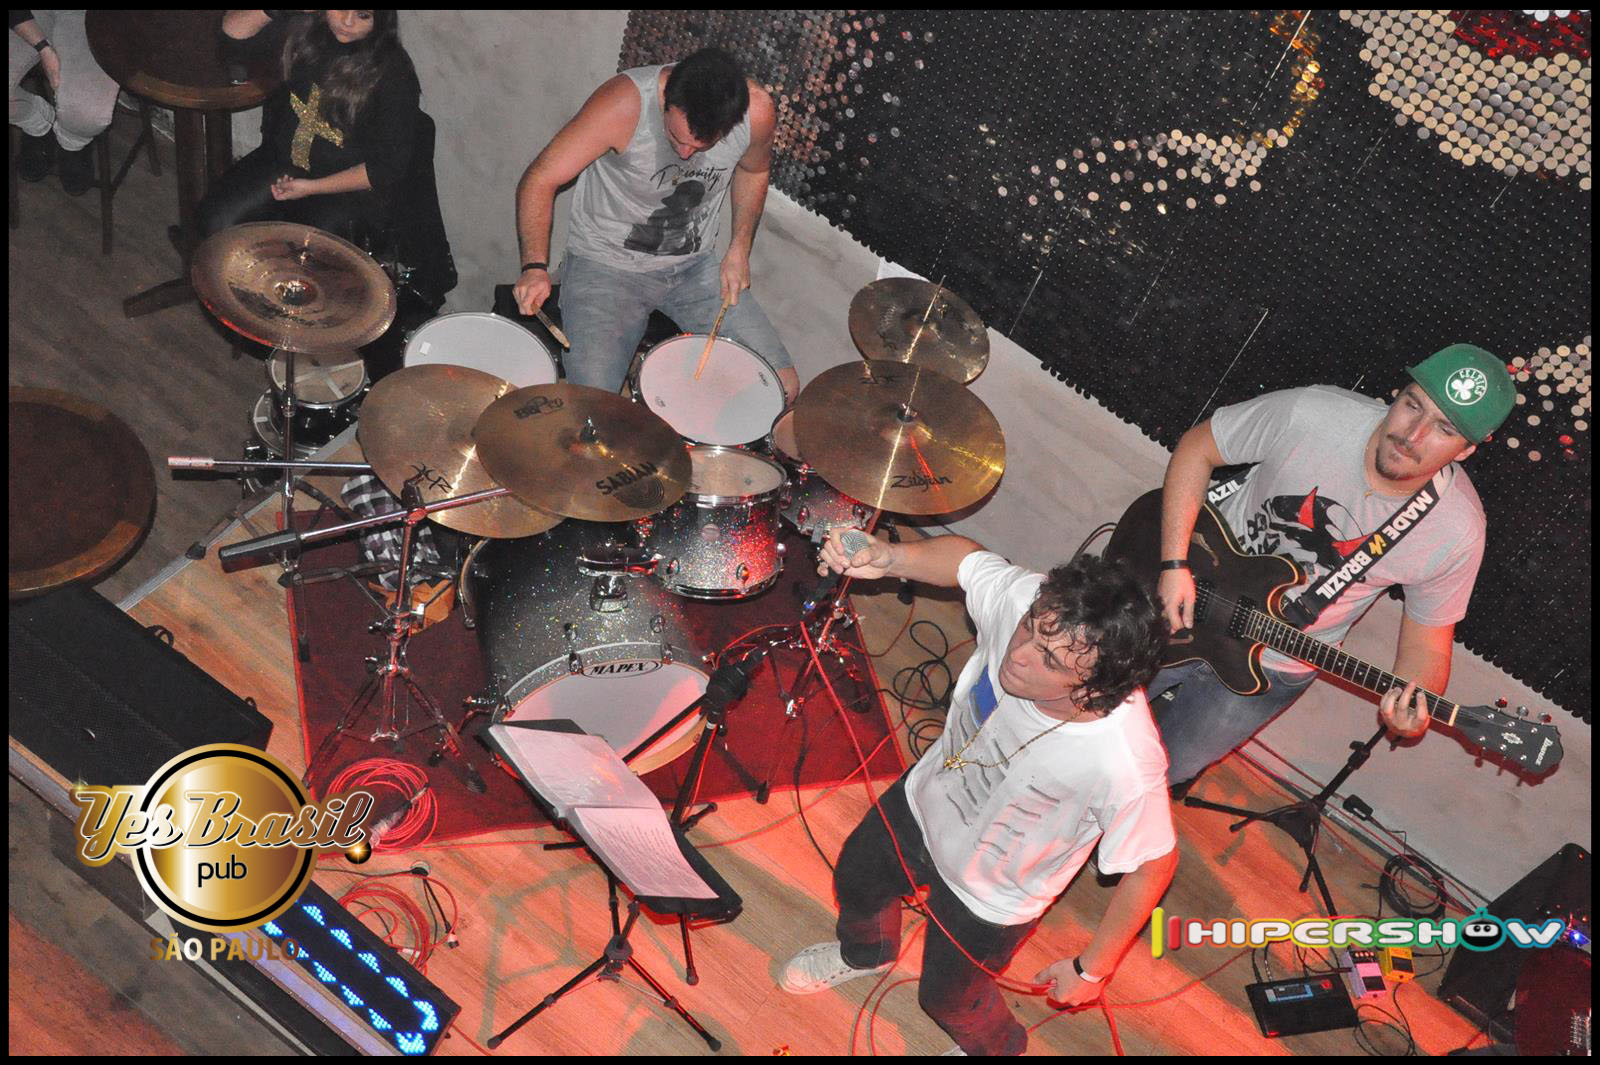 Quinta do Rock com a banda Rock Collection e parceria da 89 FM no Yes Brasil Pub